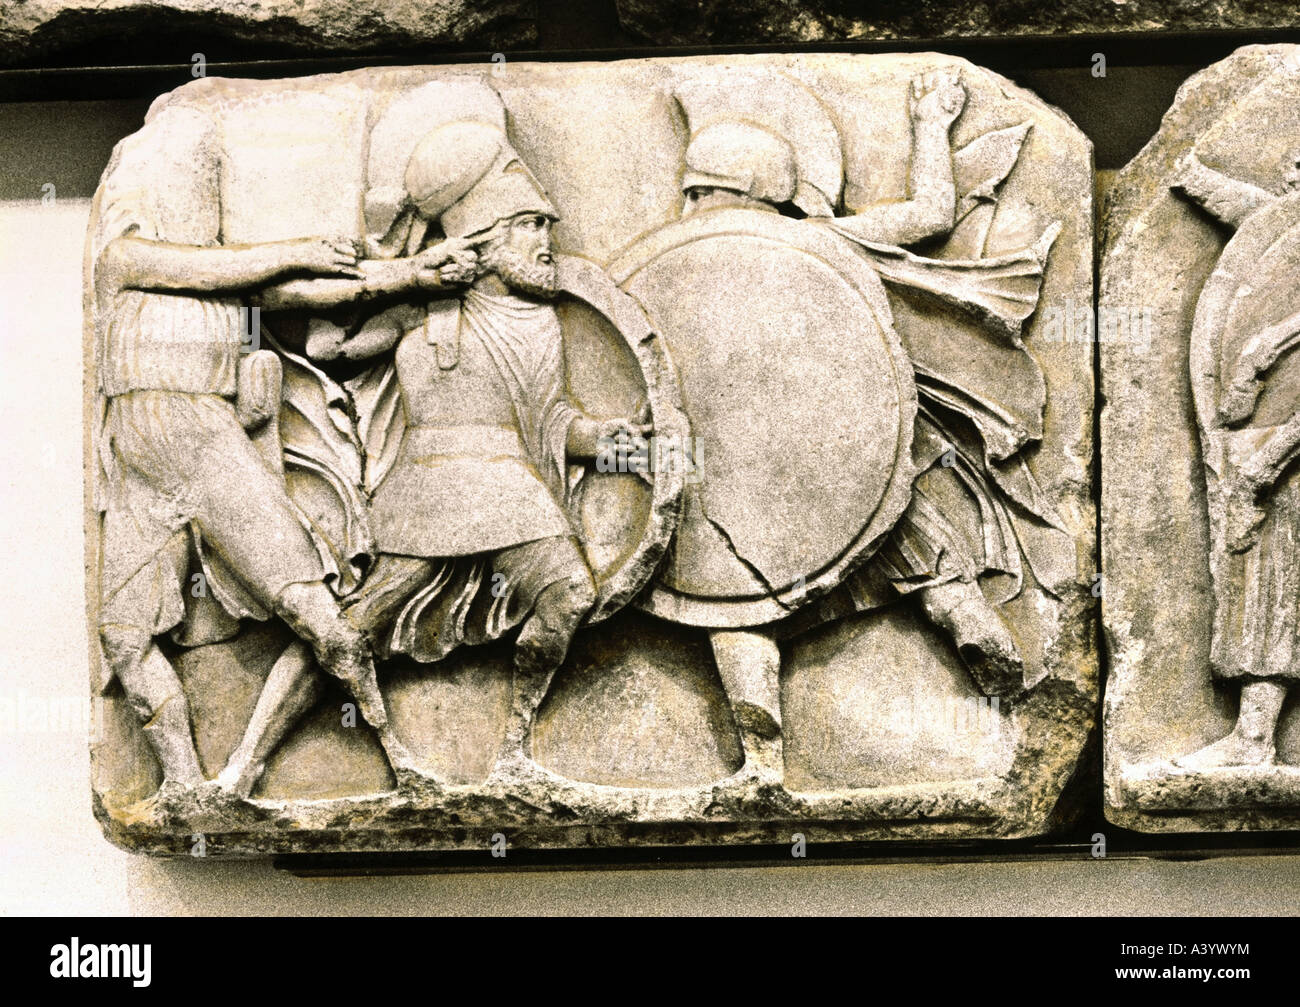 fine arts ancient world greece sculpture combat scene relief